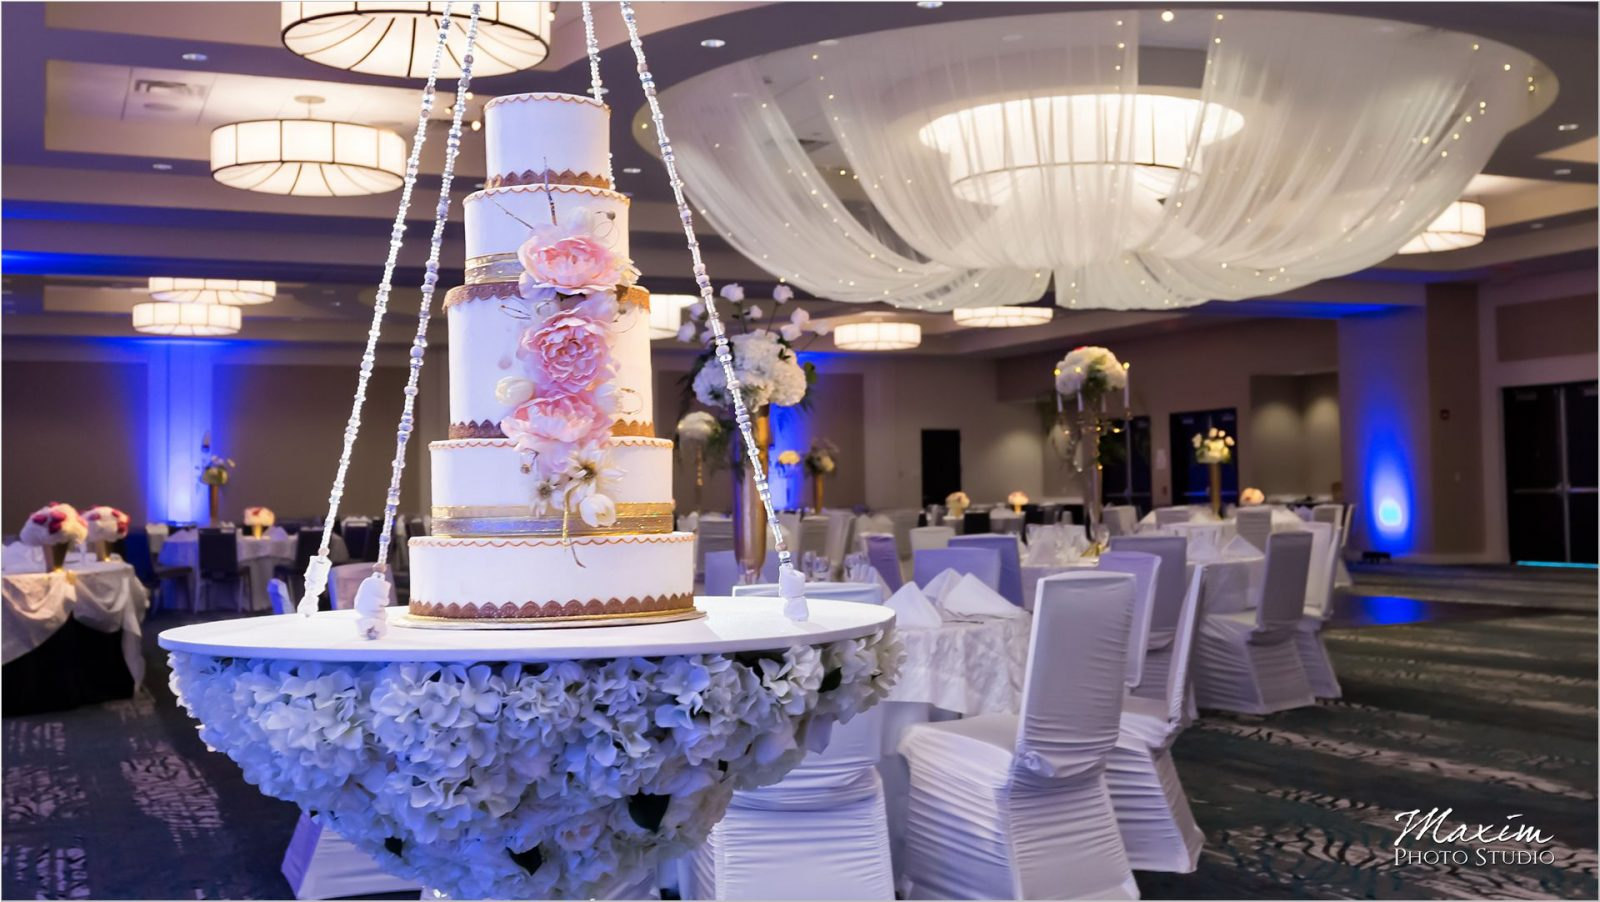 Centre Park West Holiday Inn Wedding Cake